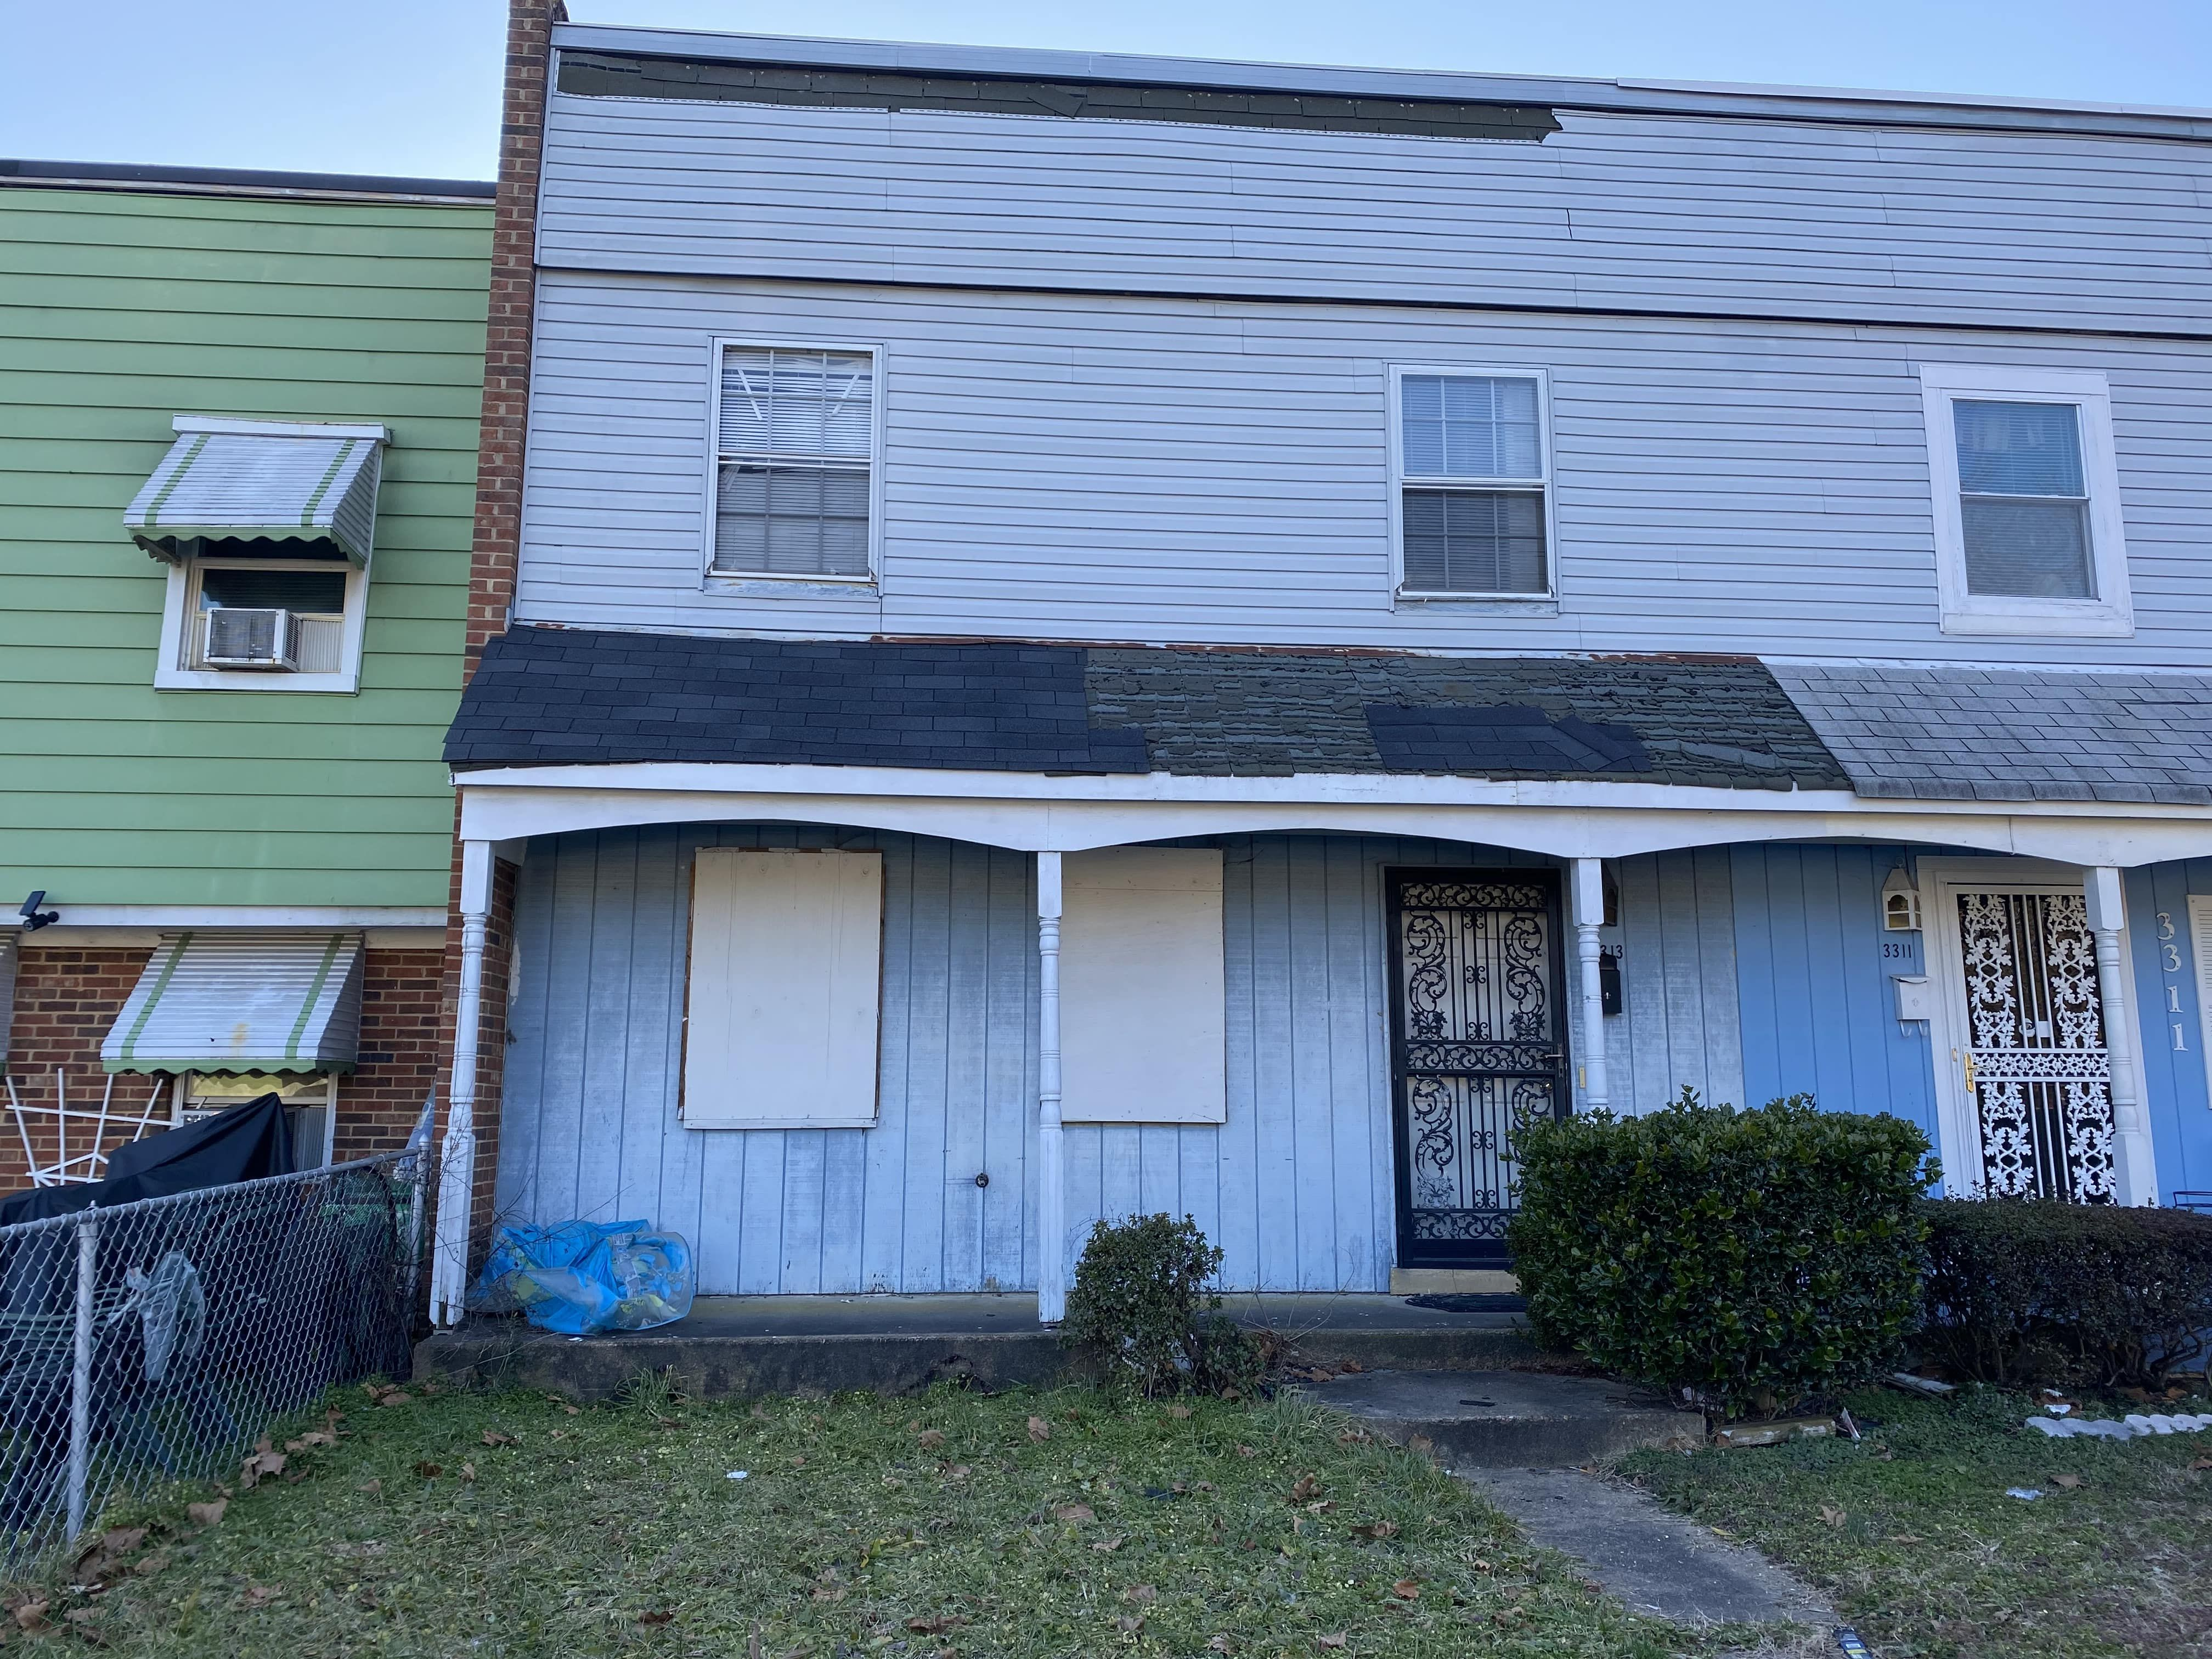 3313 Dill Ave (Image - 1)